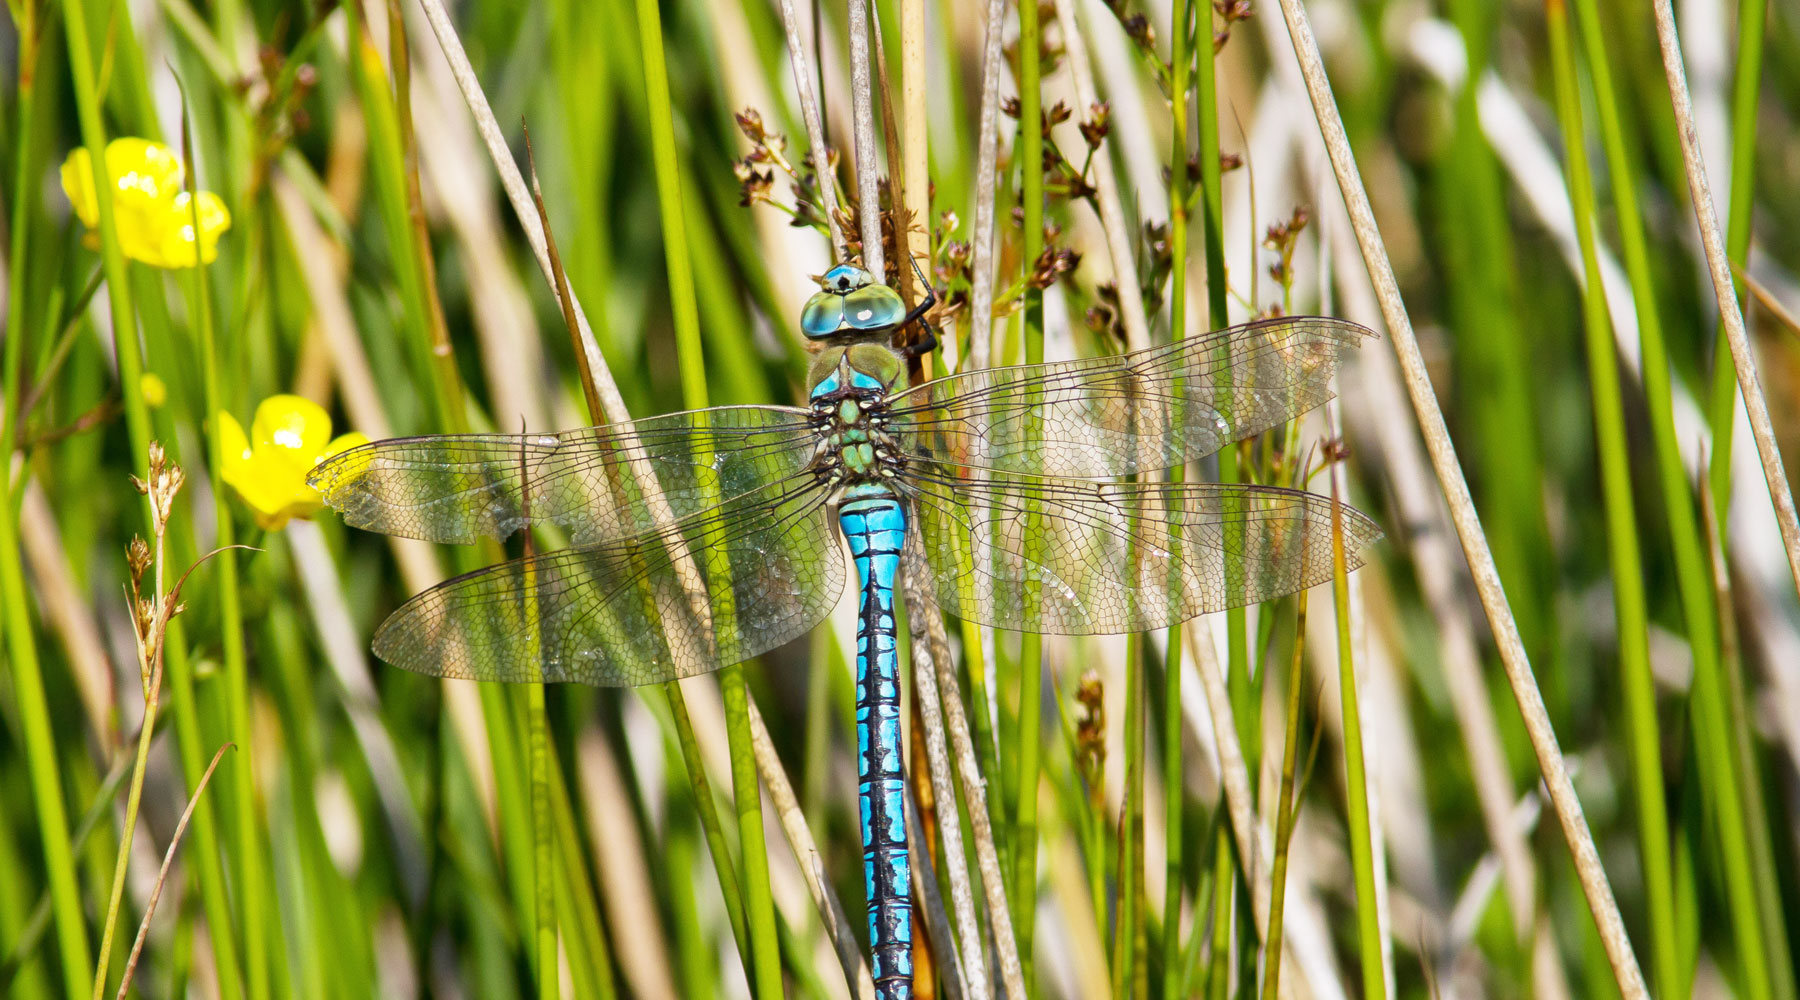 Mike Snelle | Emperor Dragonfly